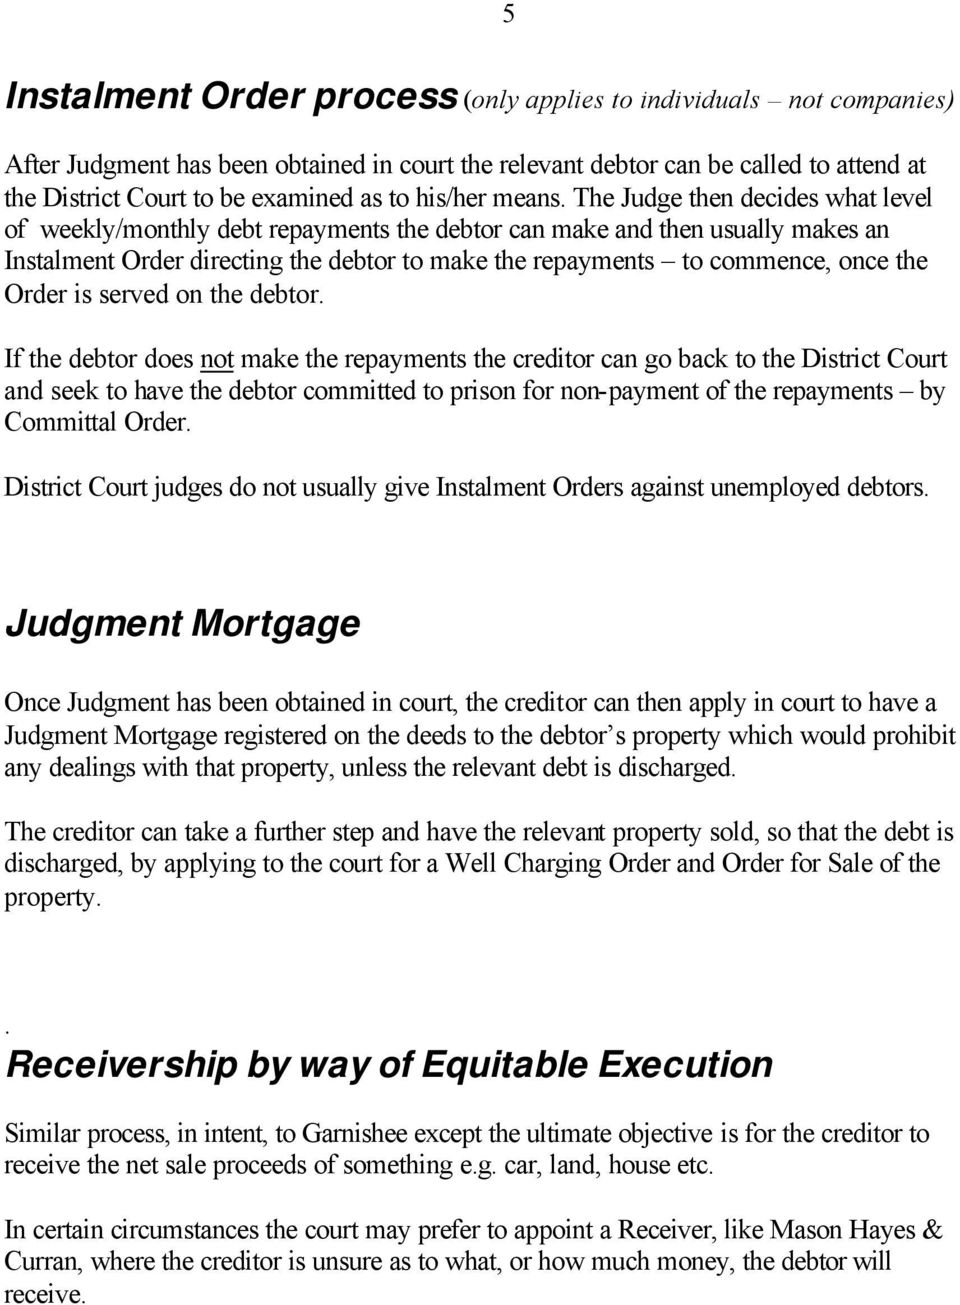 The Judge then decides what level of weekly/monthly debt repayments the debtor can make and then usually makes an Instalment Order directing the debtor to make the repayments to commence, once the